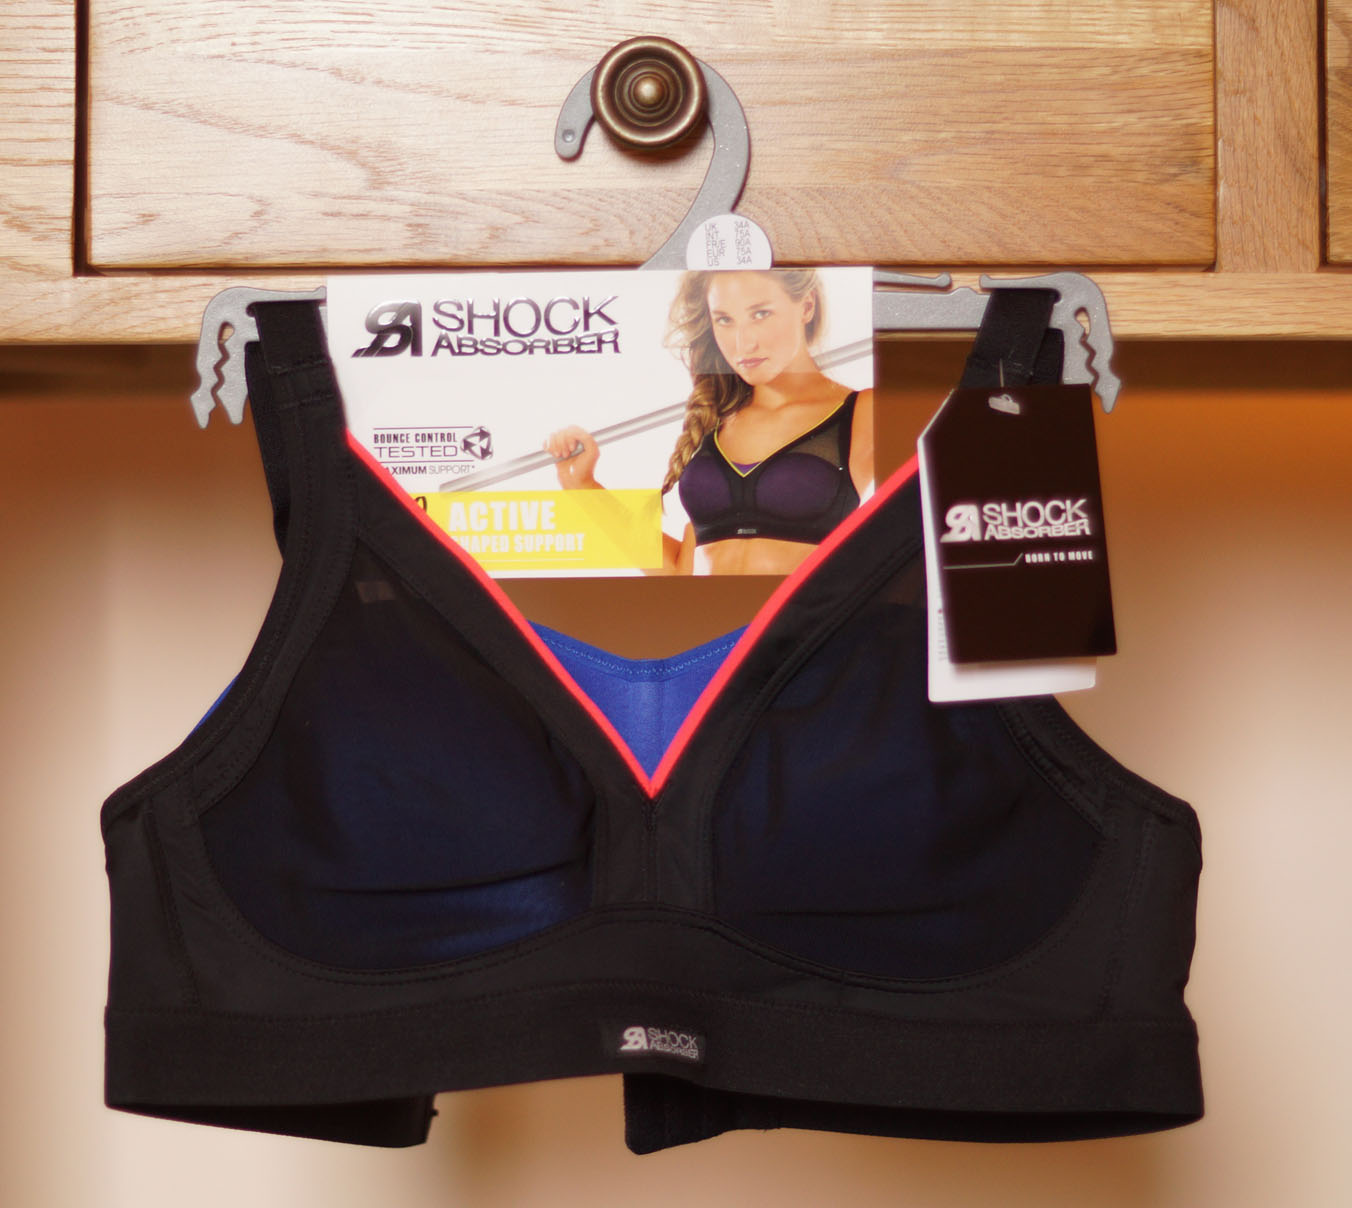 a8493aec2c1ab Shock Absorber Active Shaped Support sports bra review SS16 collection